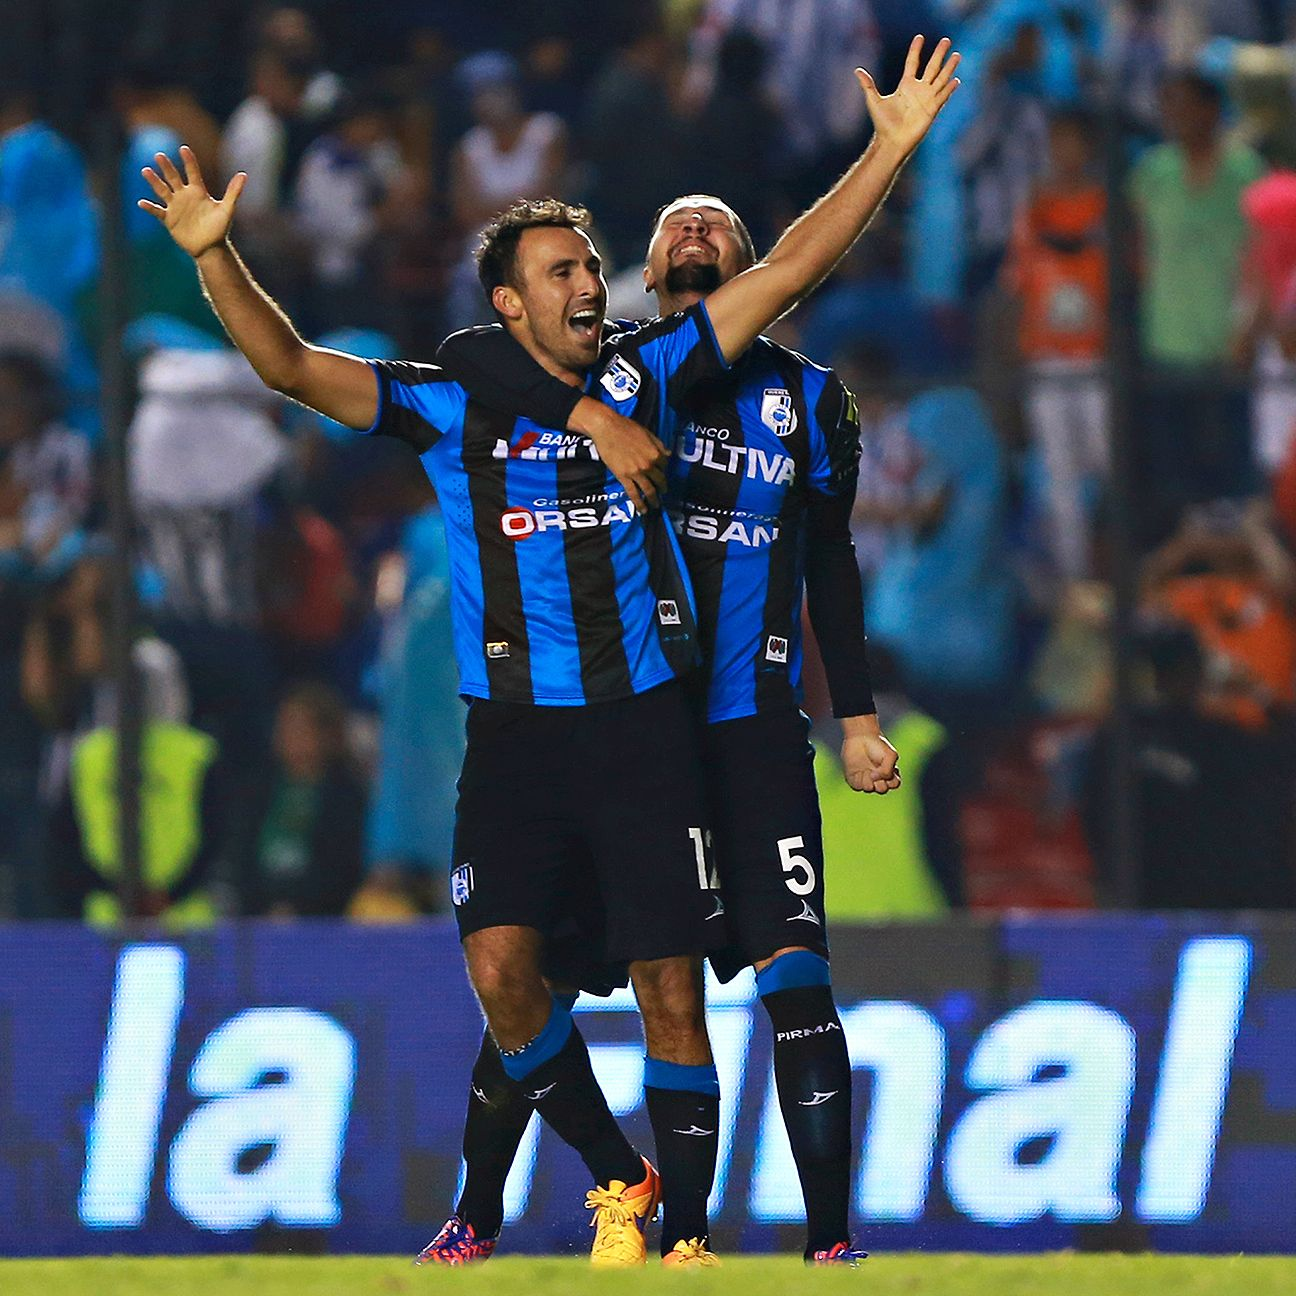 Former Chivas USA defender Jonathan Bornstein sent Queretaro to their first ever final with his decisive goal in the <i>Liguilla</i> semifinals.